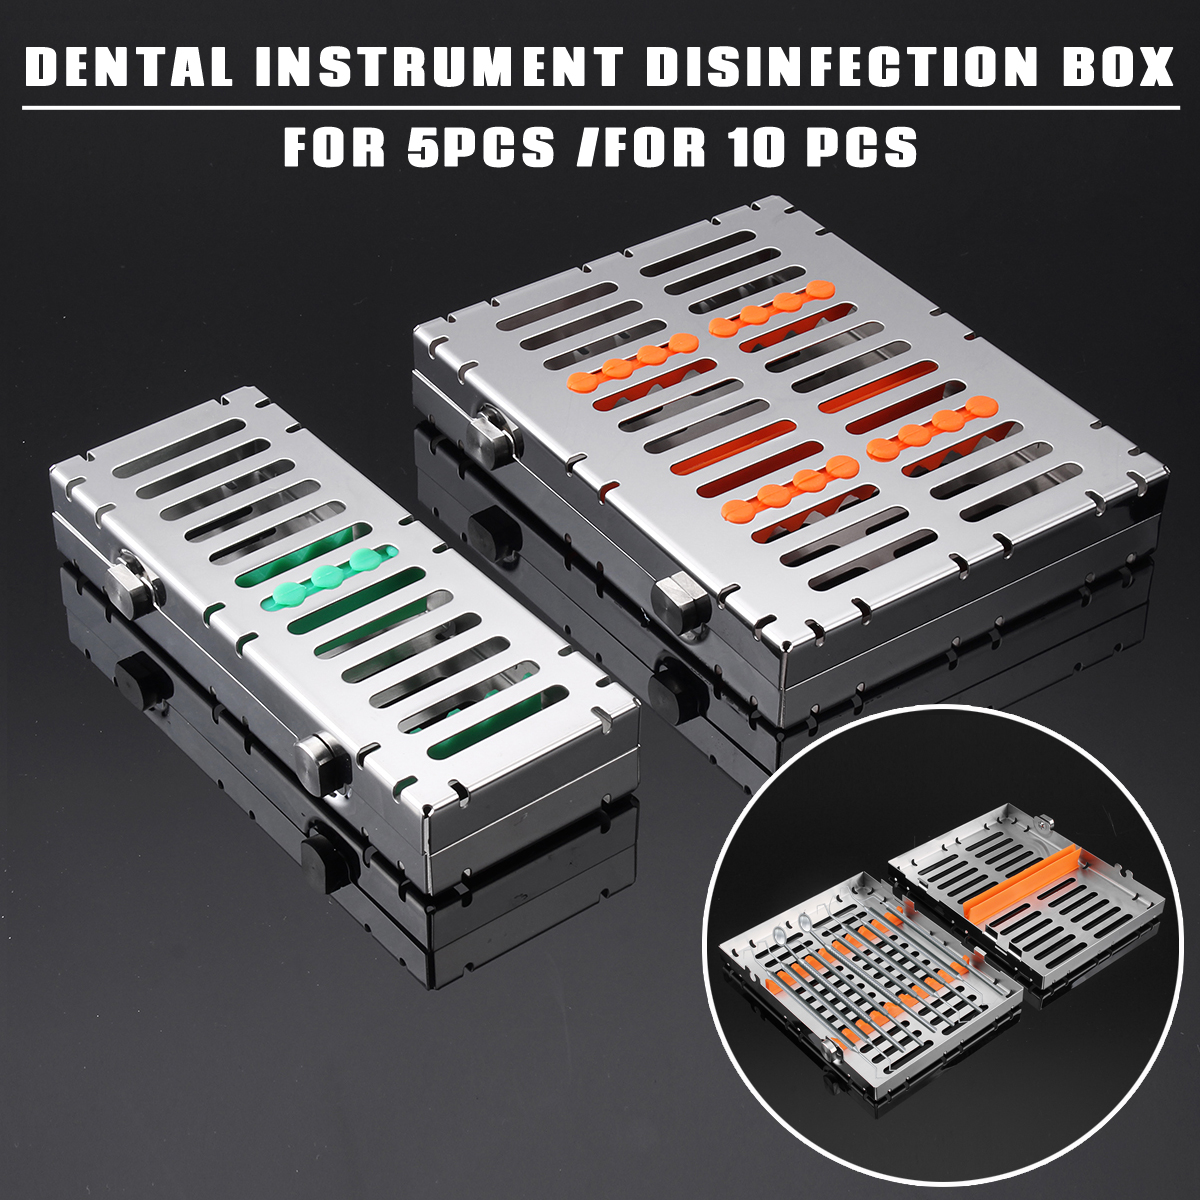 Stainless Steel Dental Sterilization Cassette Rack Tray Stand Autoclavebale Disinfection Holder For 5/10pc Surgical Instrument 1pc dental 201 stainless steel medical instrument tray useful tool for clinic lab